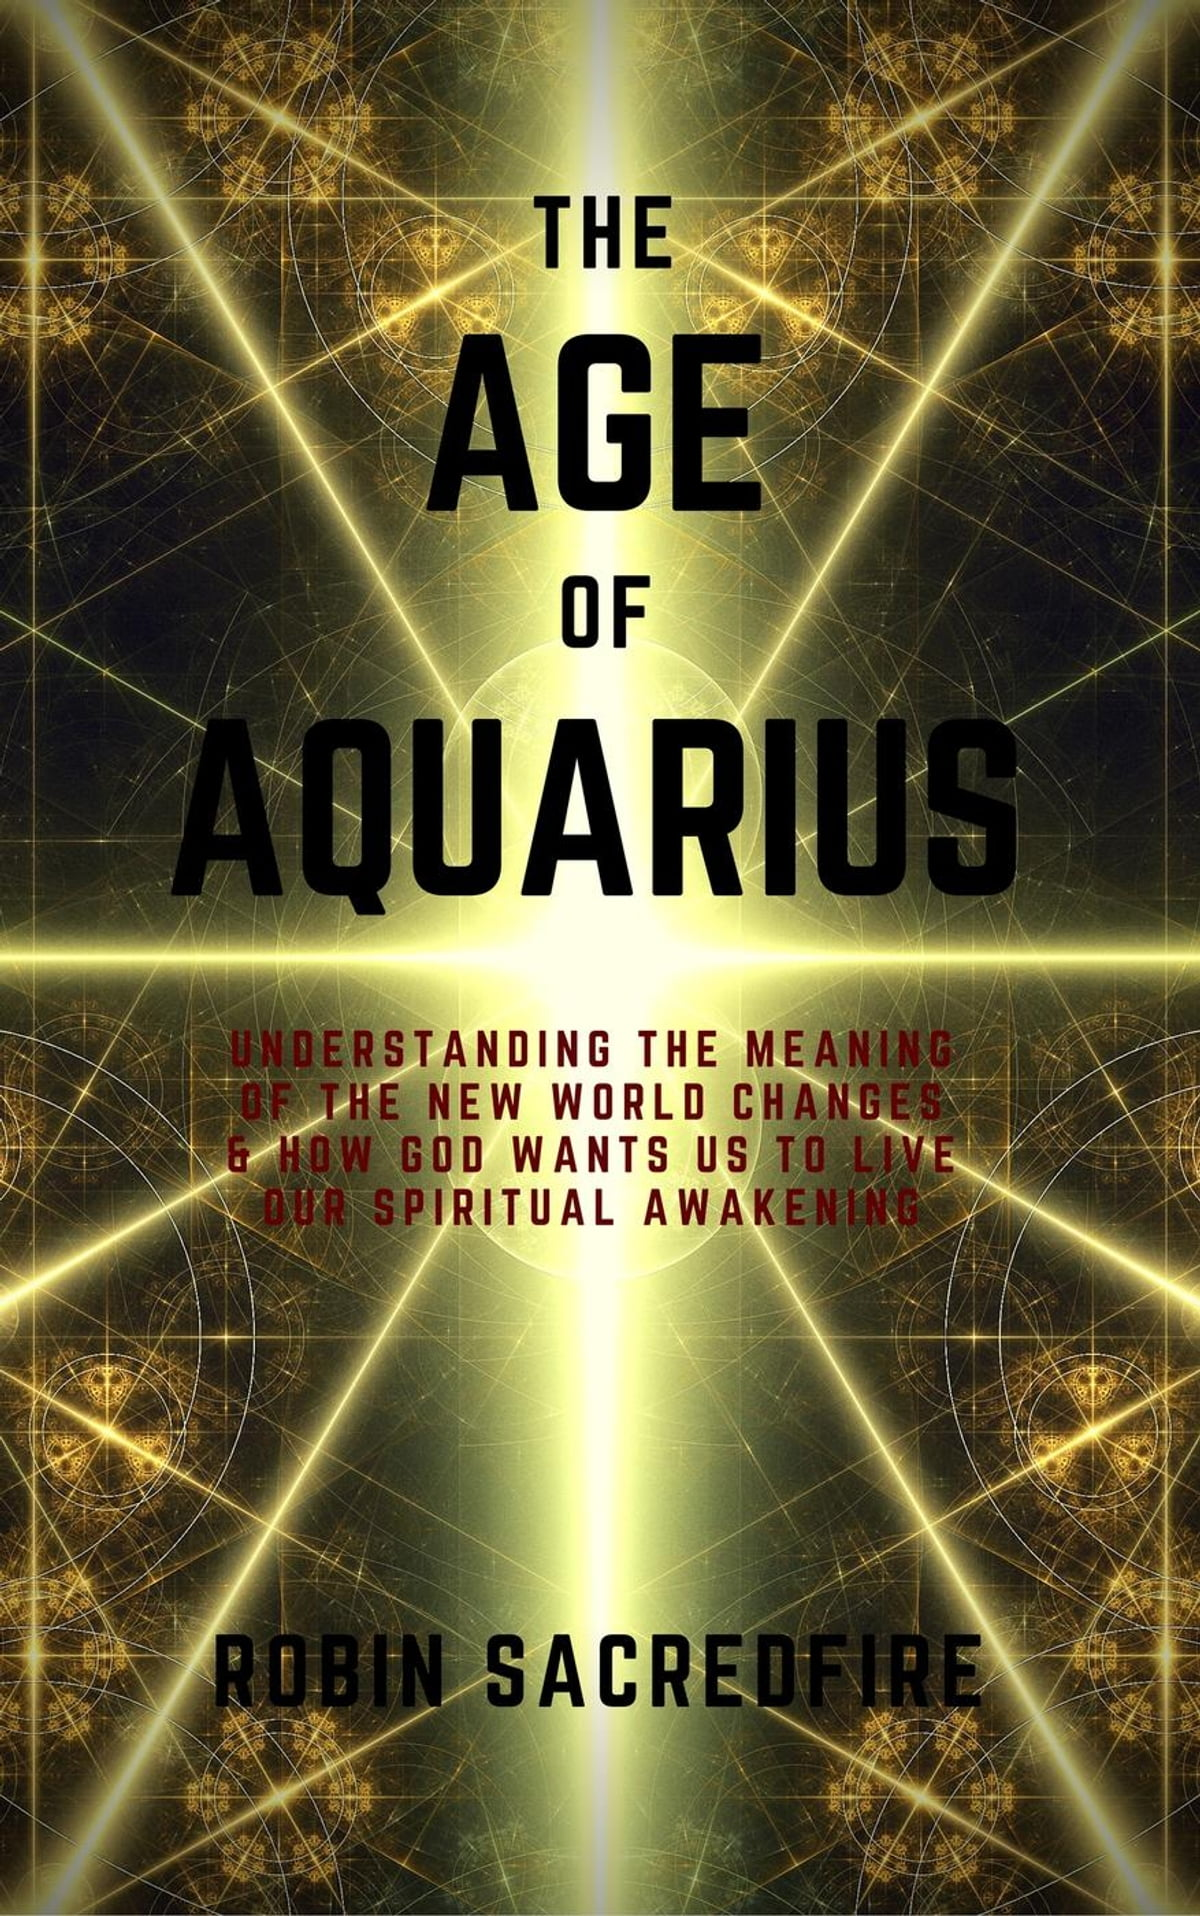 The Age of Aquarius: Understanding the Meaning of the New World Changes and  How God Wants Us to Live Our Spiritual Awakening ebook by Robin Sacredfire